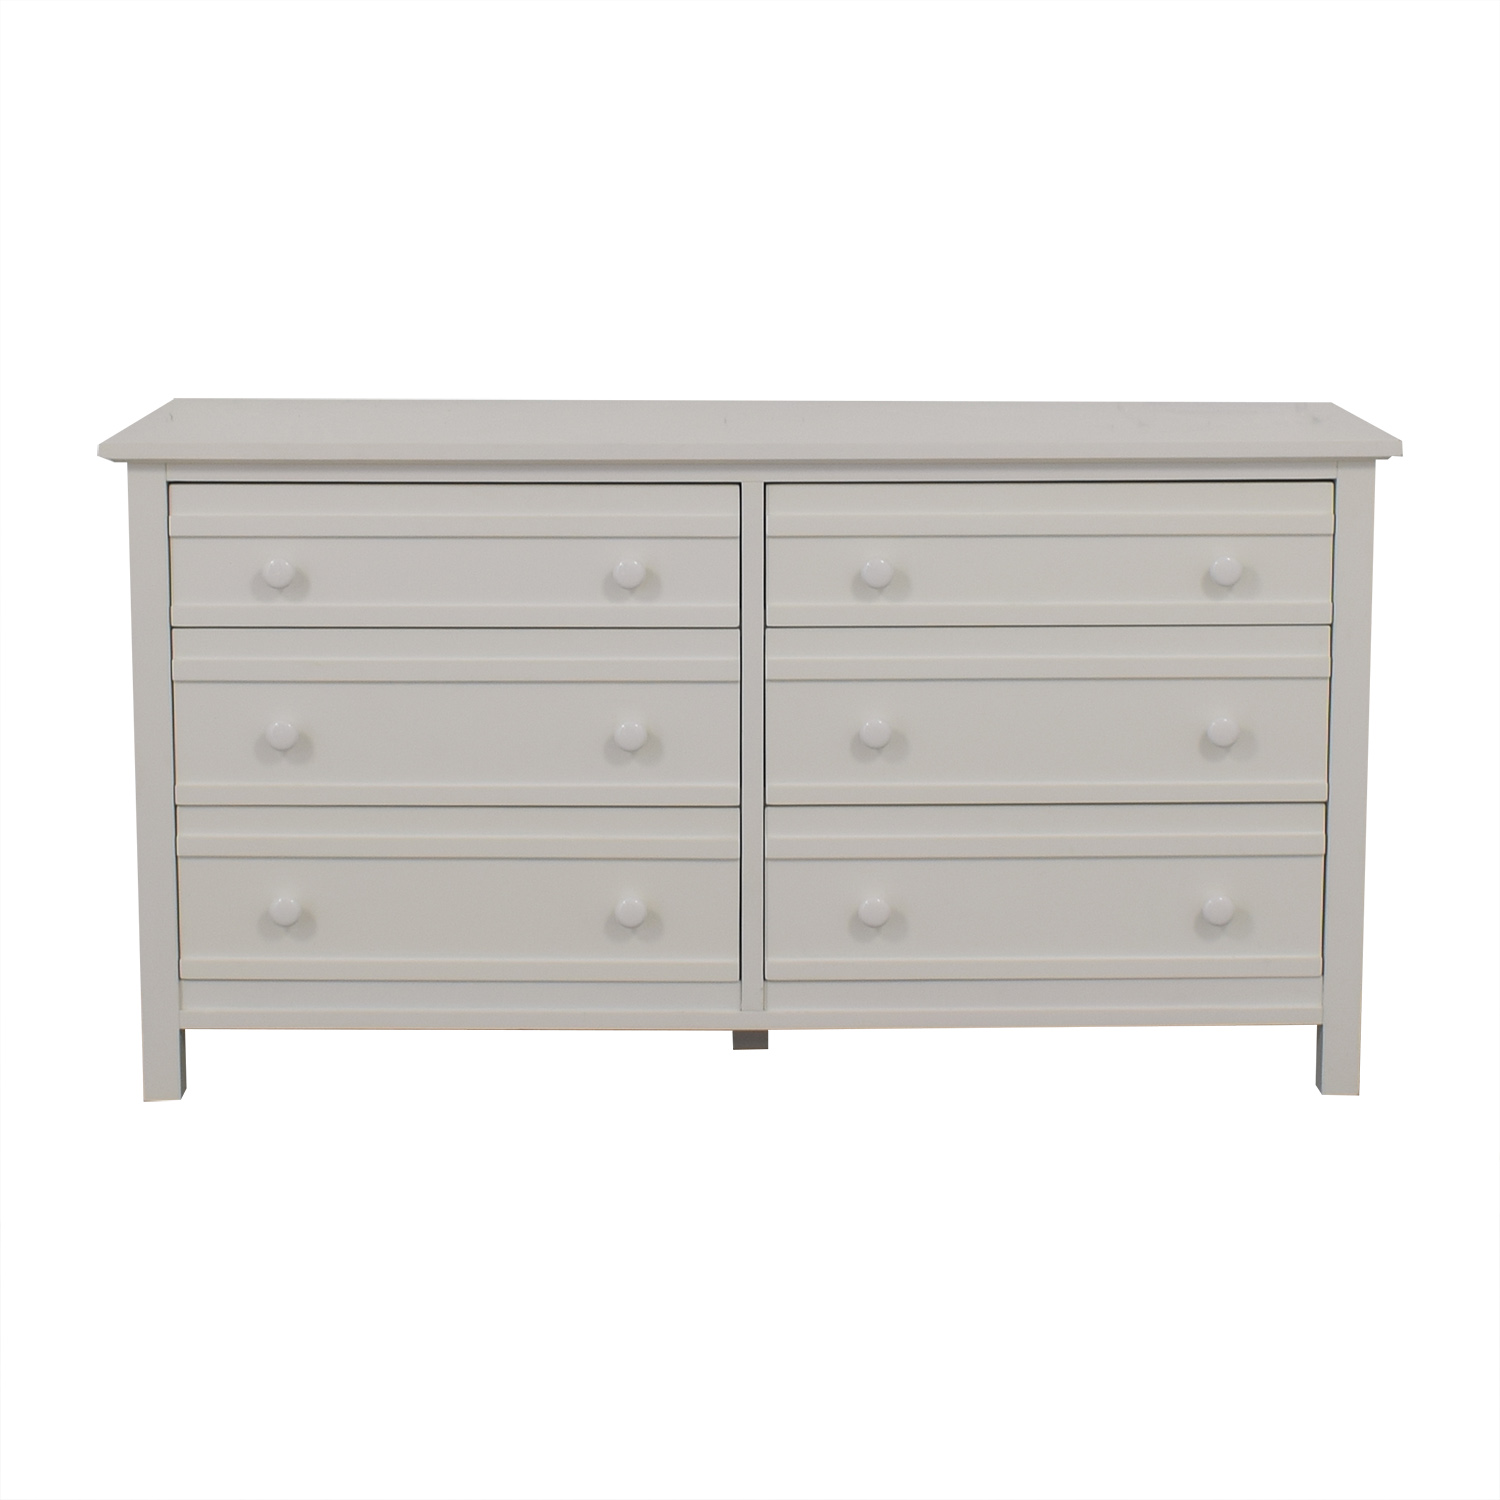 Crate & Barrel Crate & Barrel Brighton White Six-Drawer Dresser second hand